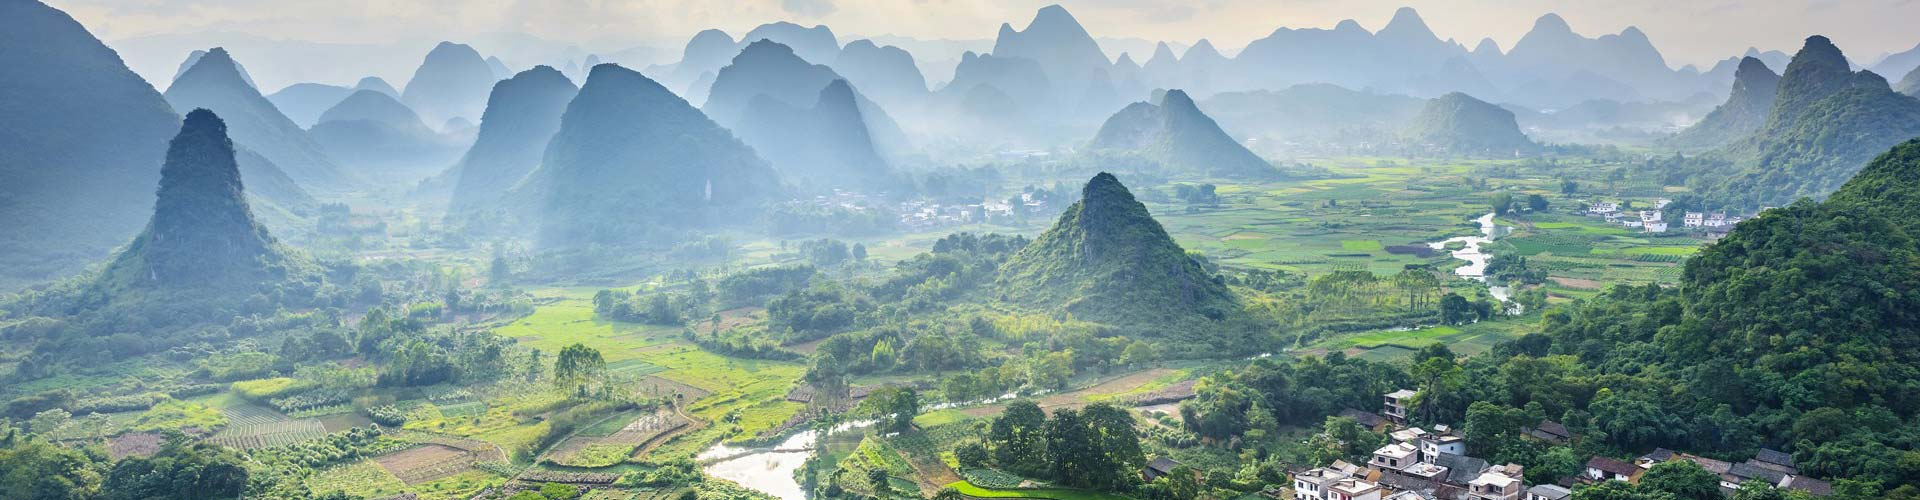 6 Days Guilin, Sanjiang, Longsheng, Yangshuo Tour